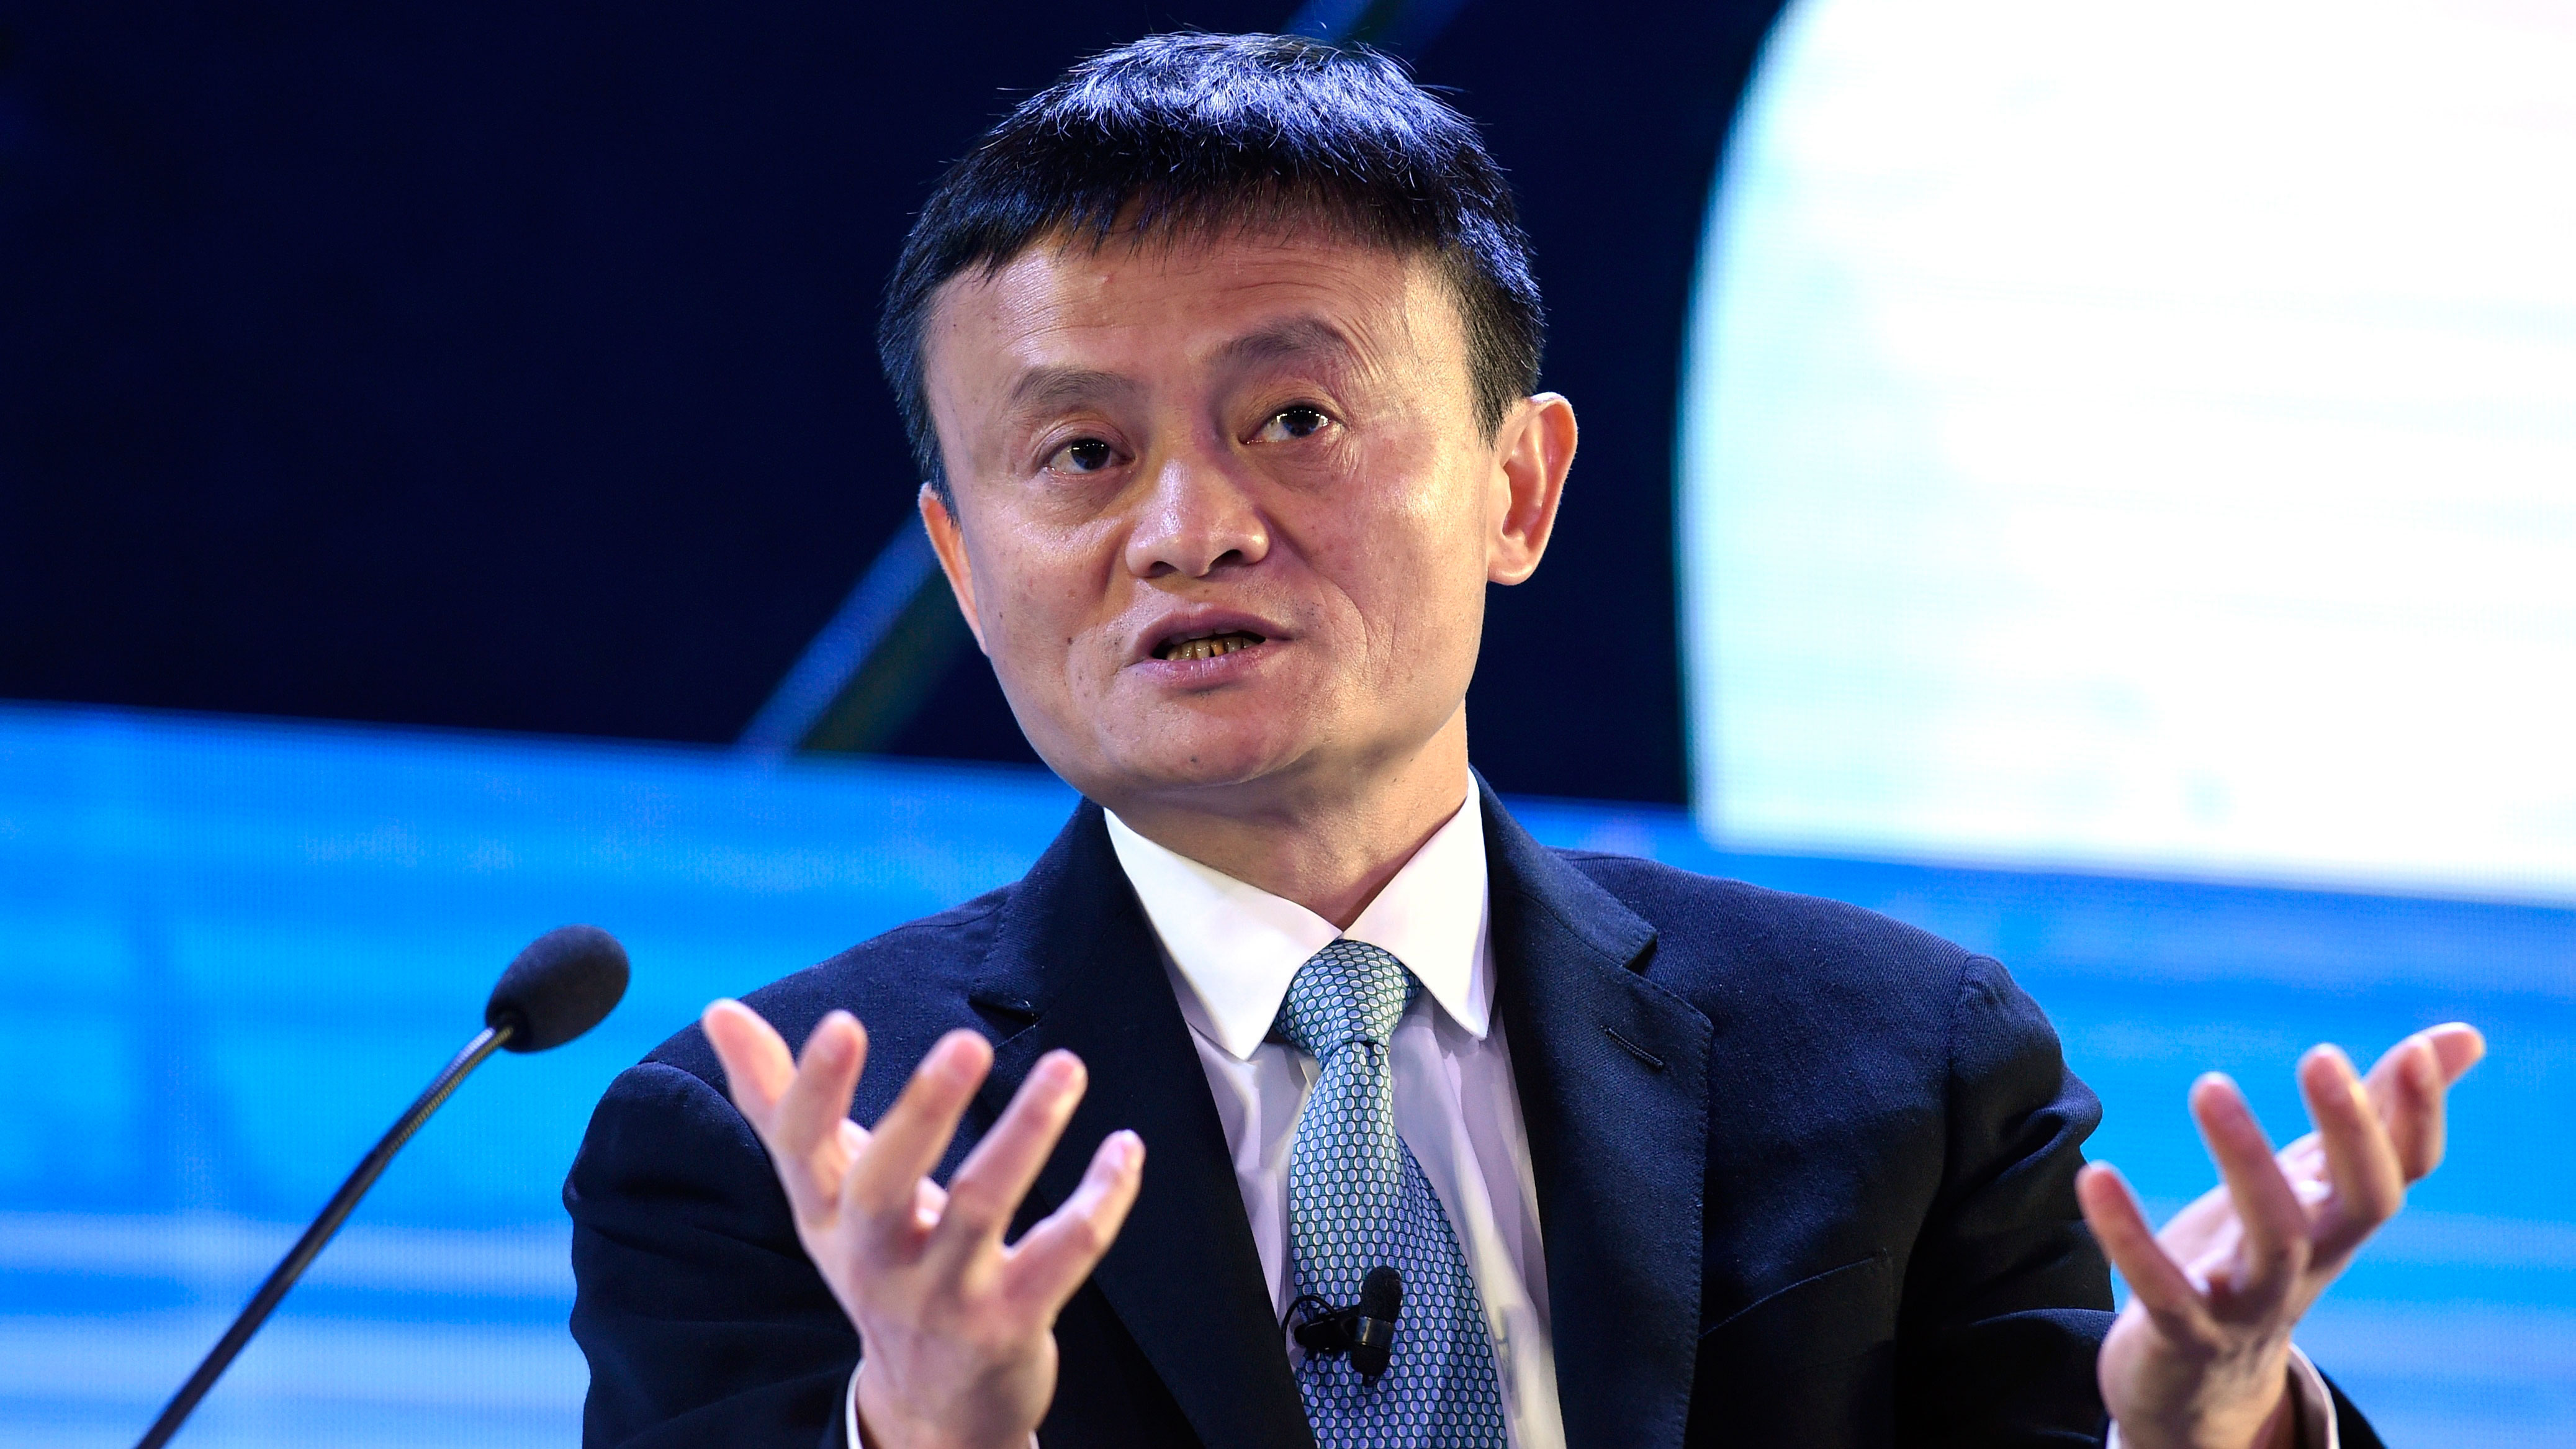 FILE - In this Nov. 18, 2015 file photo, Alibaba founder Jack Ma speaks at the CEO Summit, attended by 800 business leaders from around the region representing U.S. and Asia-Pacific companies, in Manila, Philippines, ahead of the start of the Asia-Pacific Economic Cooperation summit. An investigation by The Associated Press has found that the president of an influential anti-counterfeiting group owns Alibaba stock, has close ties to a key Alibaba vice president and uses family members to run his coalition. (AP Photo/Susan Walsh, File)